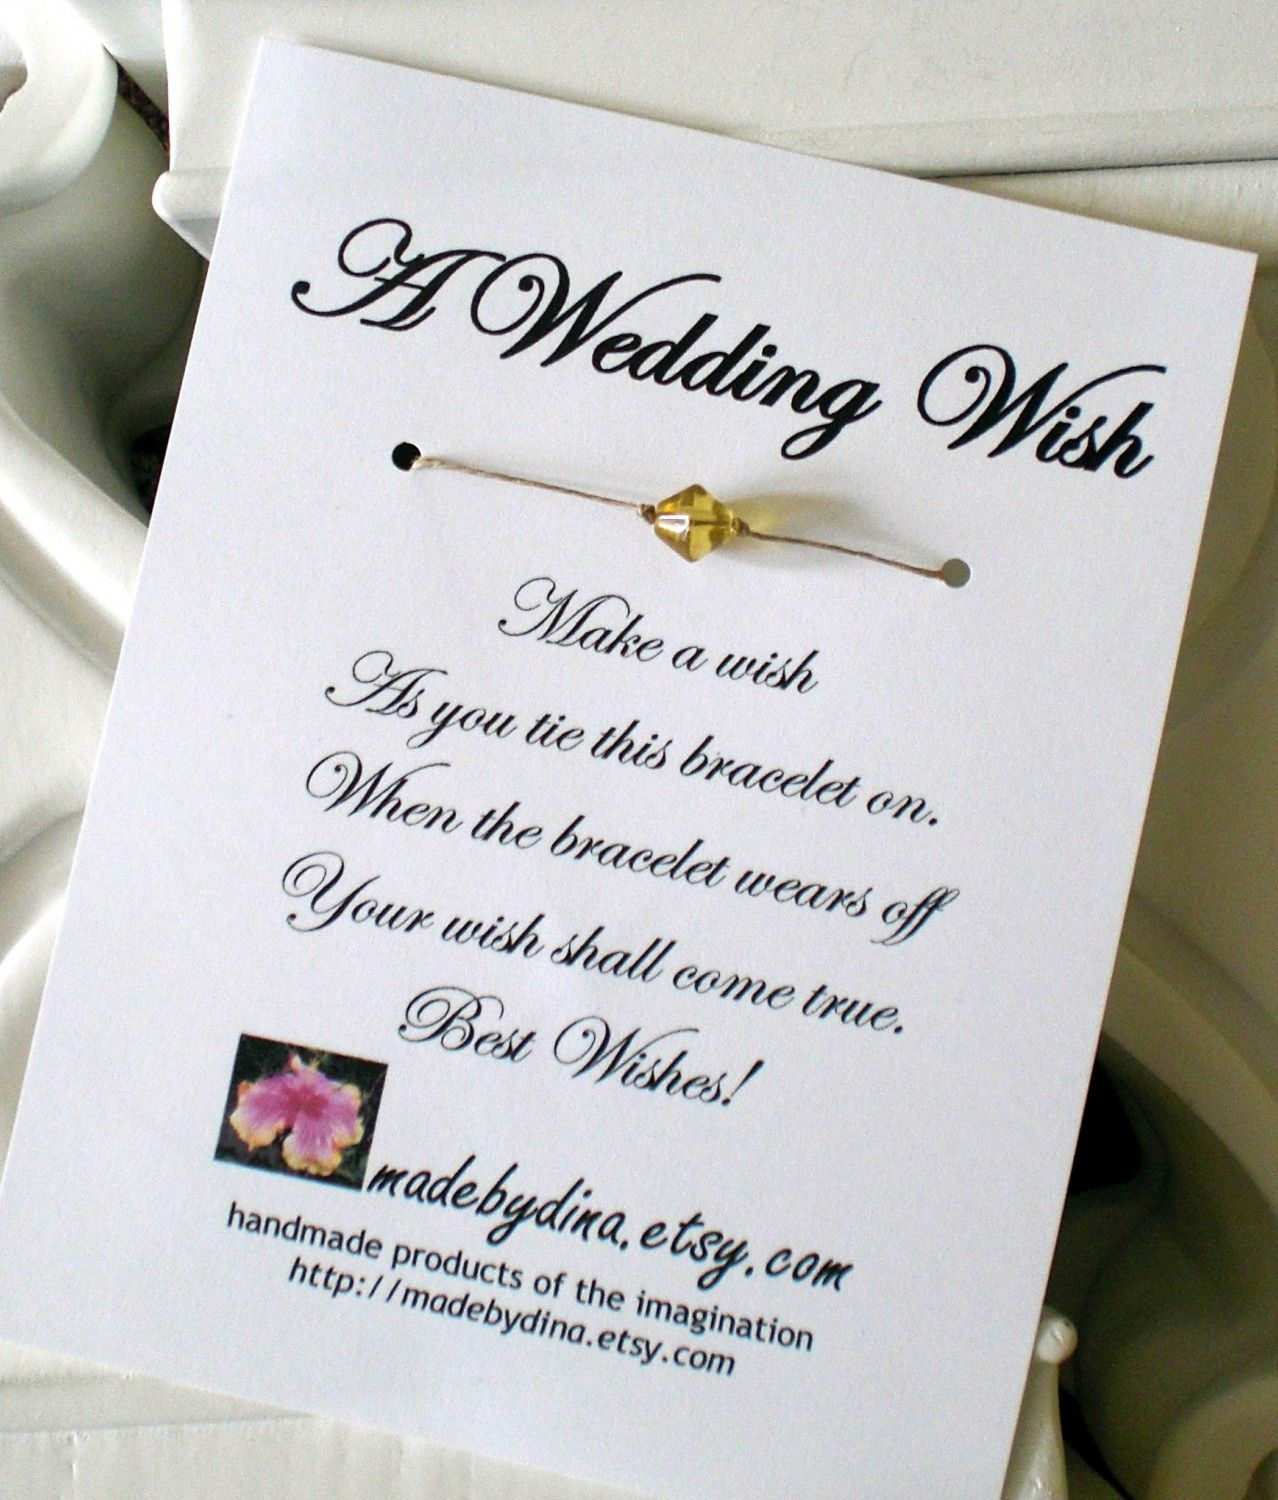 How To Write Wedding Gift Message : wedding wishes quotes that you can use wedding quotes wedding wishes ...